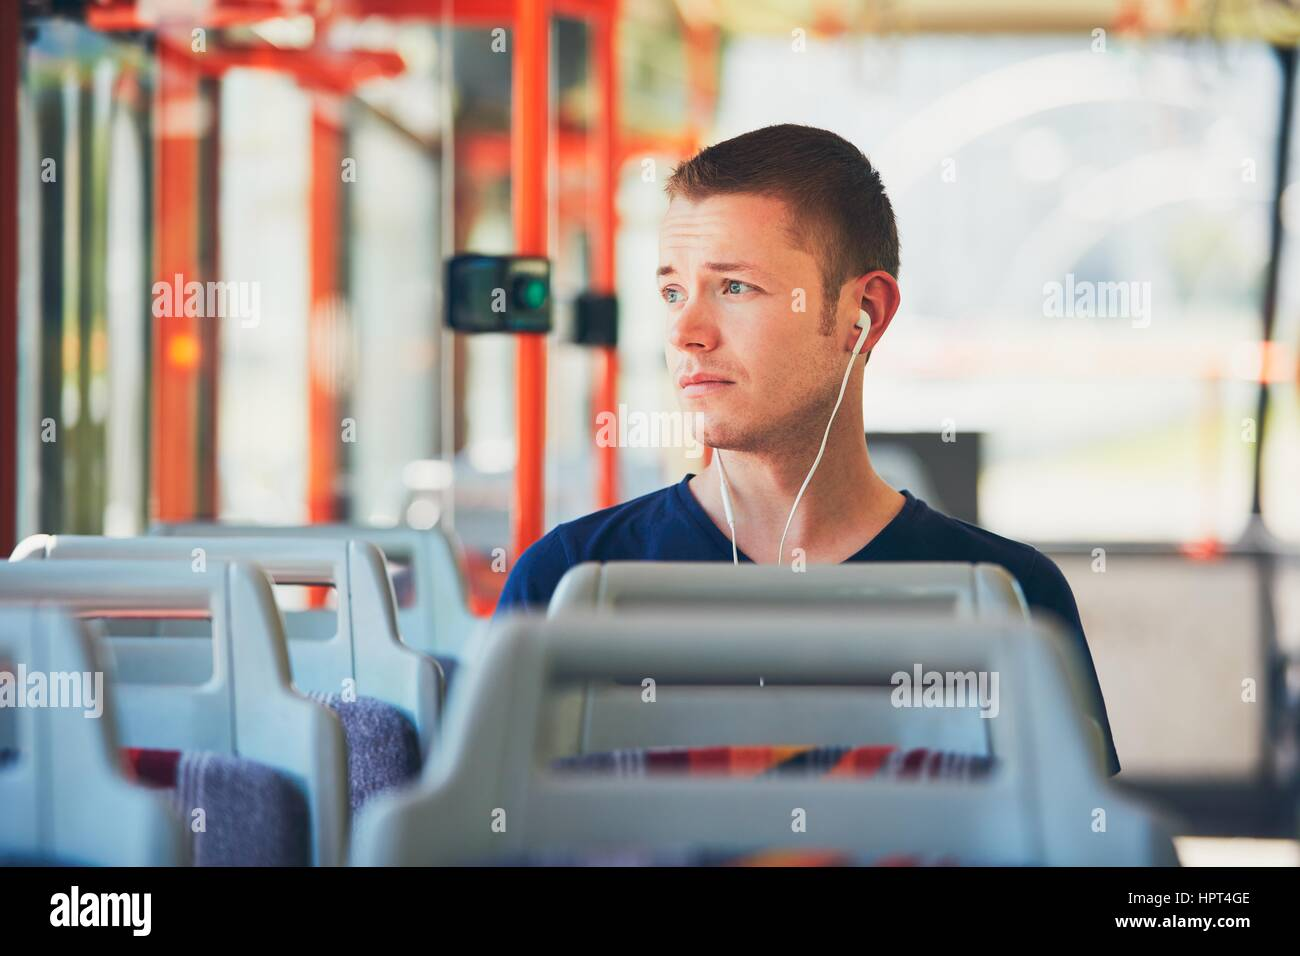 Sad young man is traveling by tram (bus). Everyday life and commuting to work by public transportation. Man is wearing Stock Photo